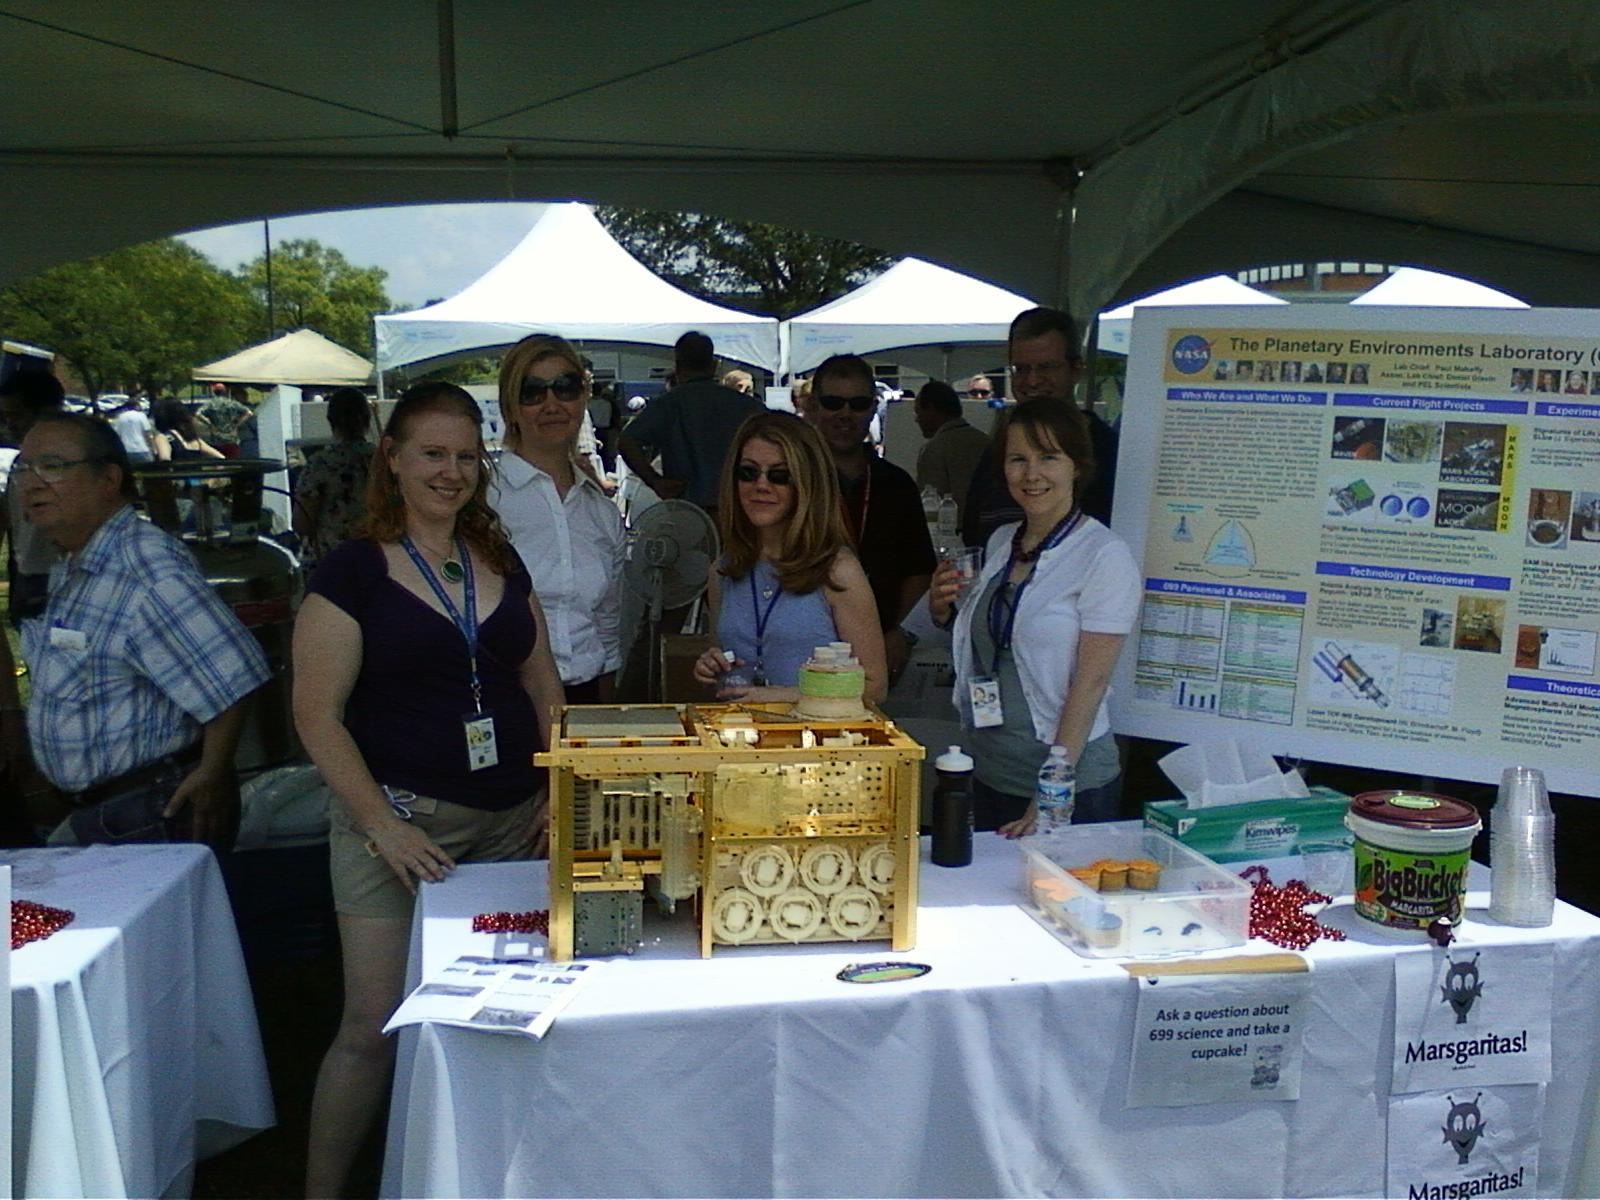 Members of the Group at Science Jamboree